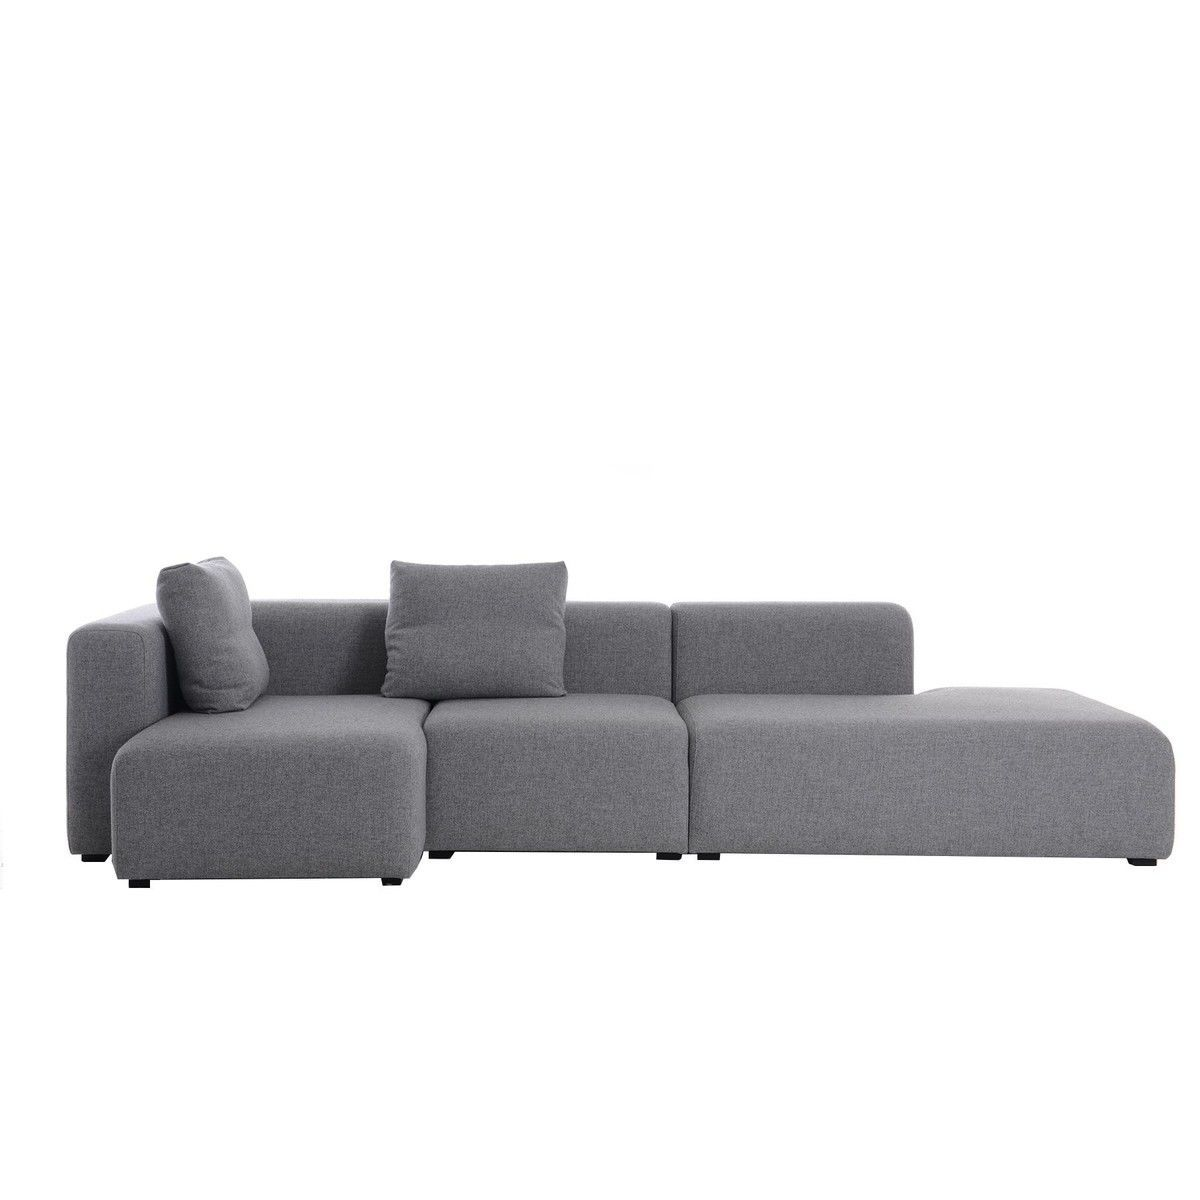 hay mags sofa fabrics denim fabric sectional sofas lounge ambientedirect